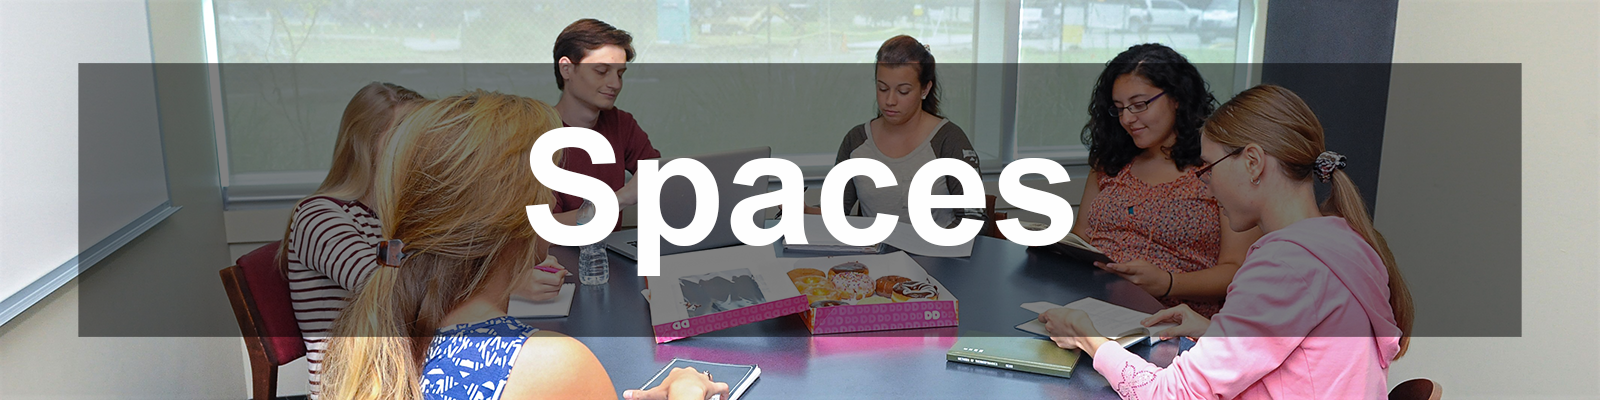 Spaces bckground group studing in a study room